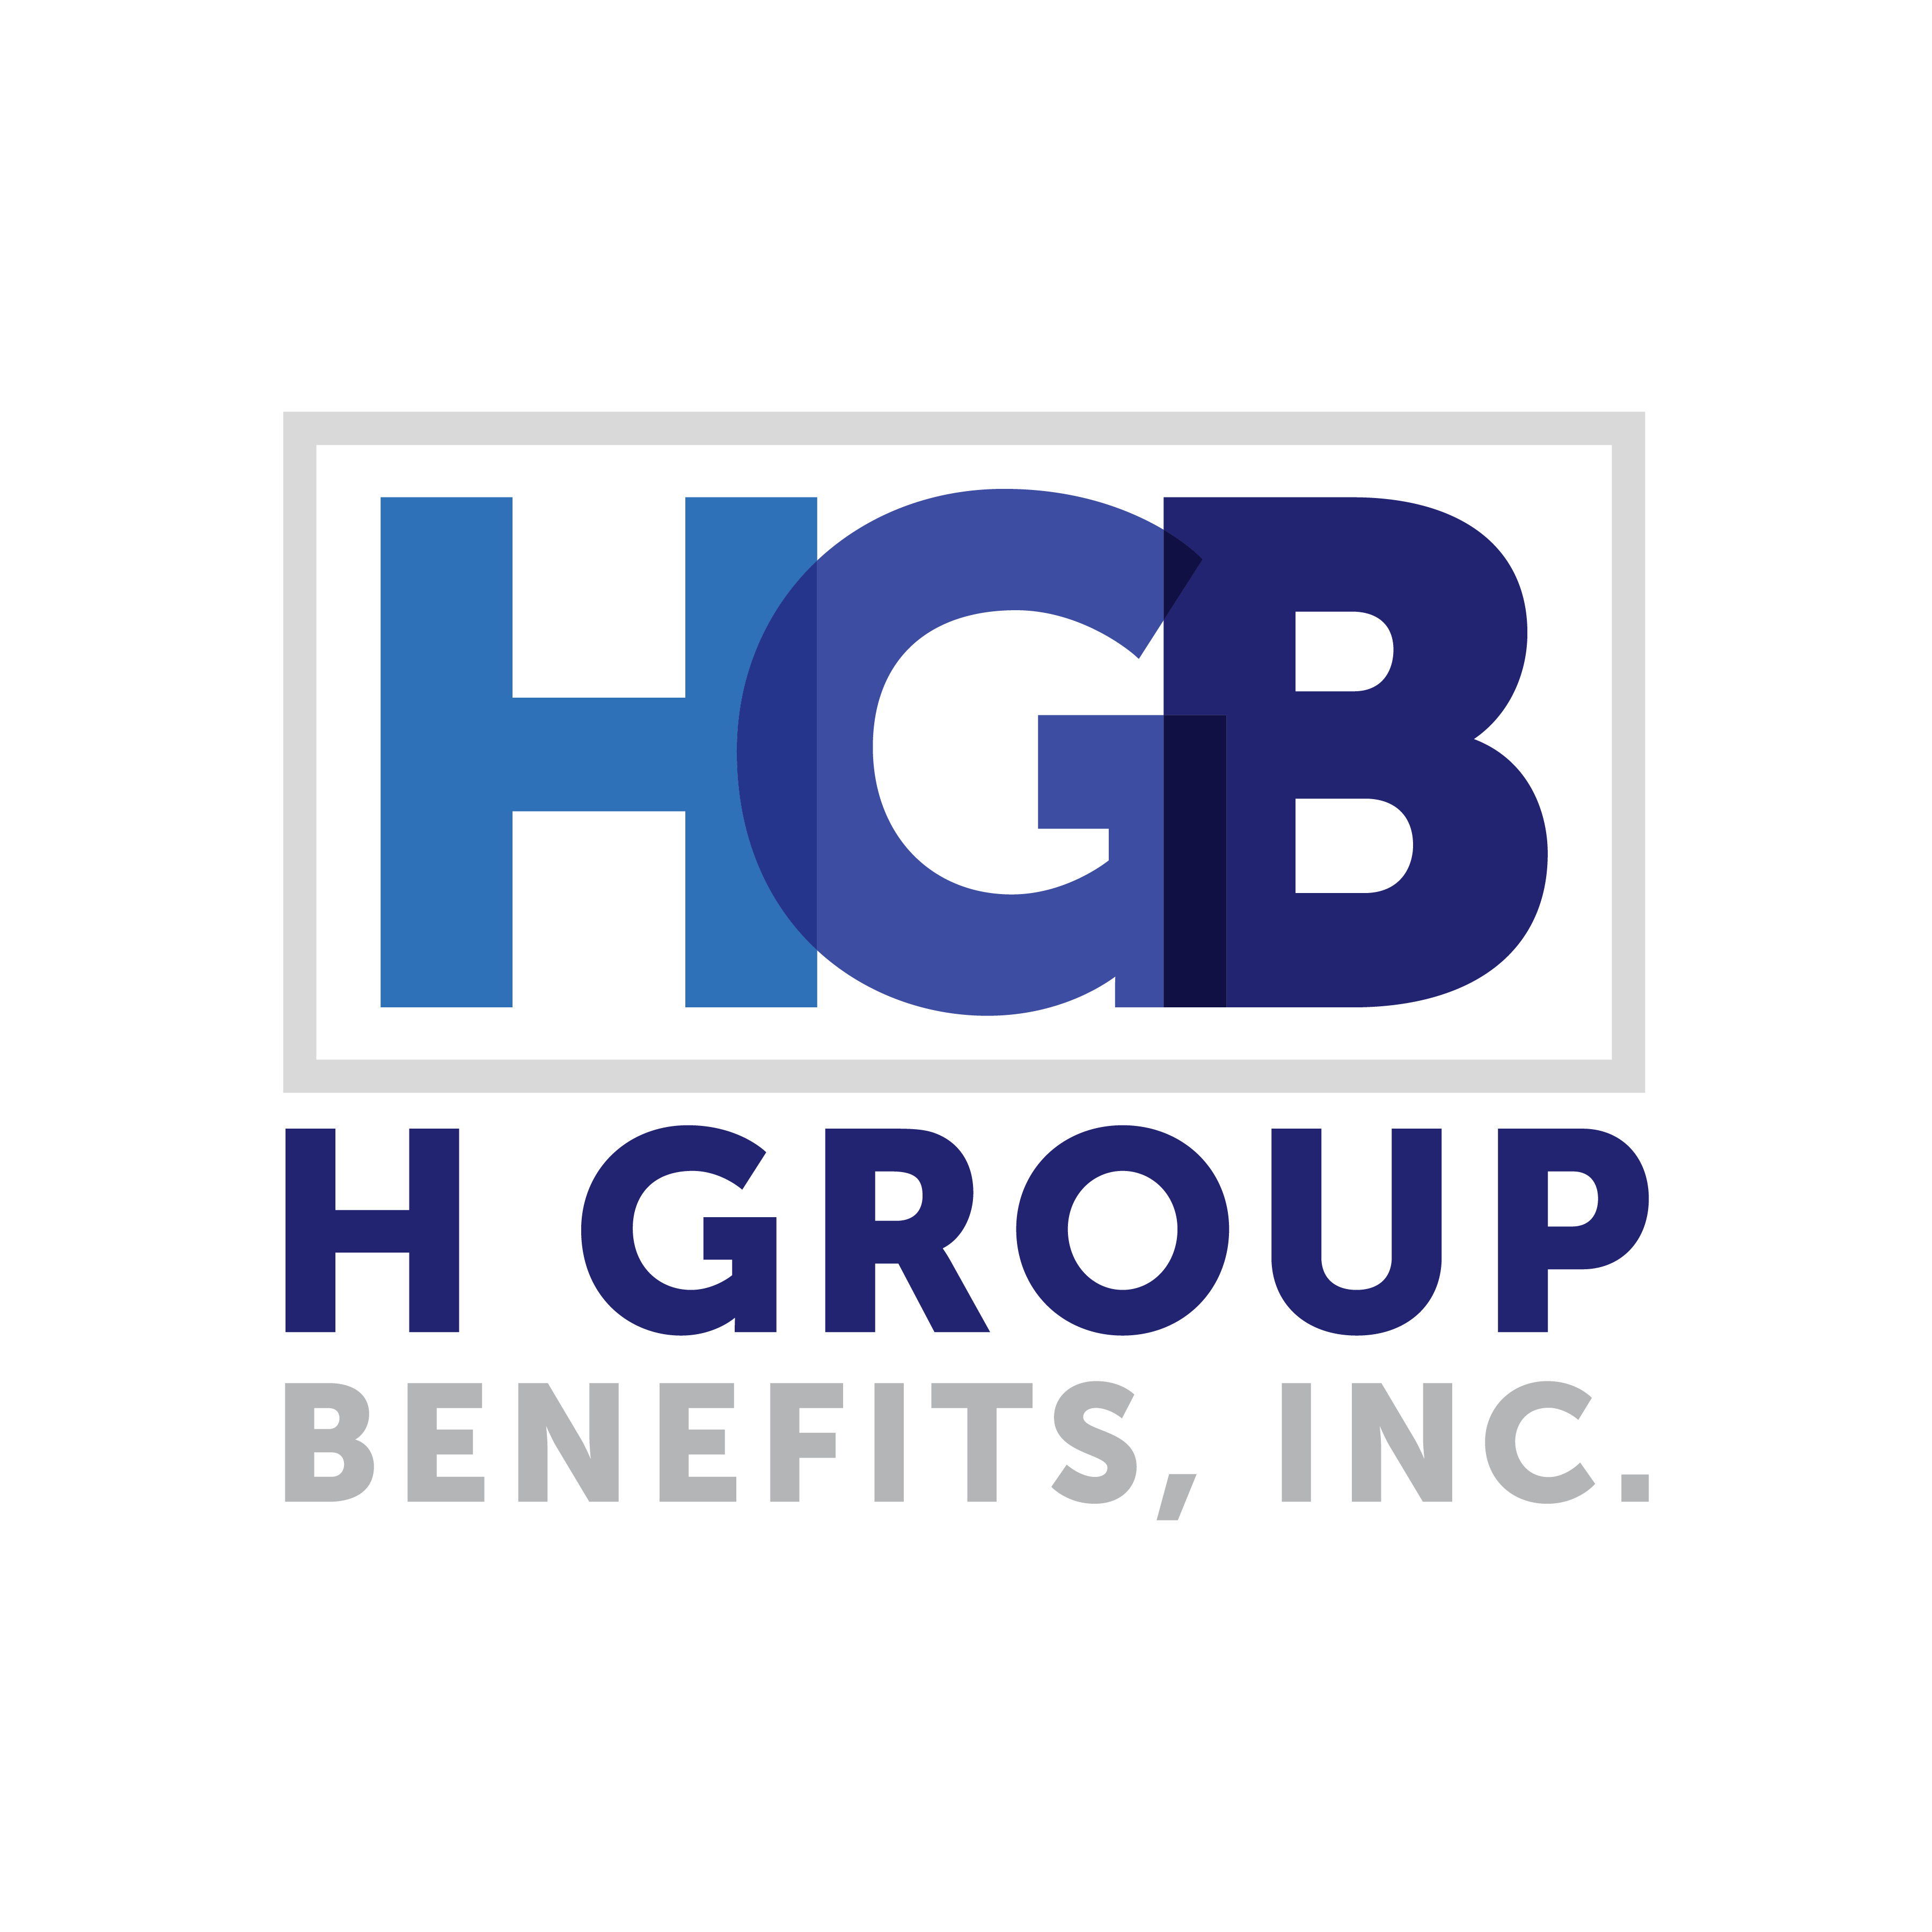 H Group Benefits - Northbrook, IL 60062 - (847)564-1640 | ShowMeLocal.com